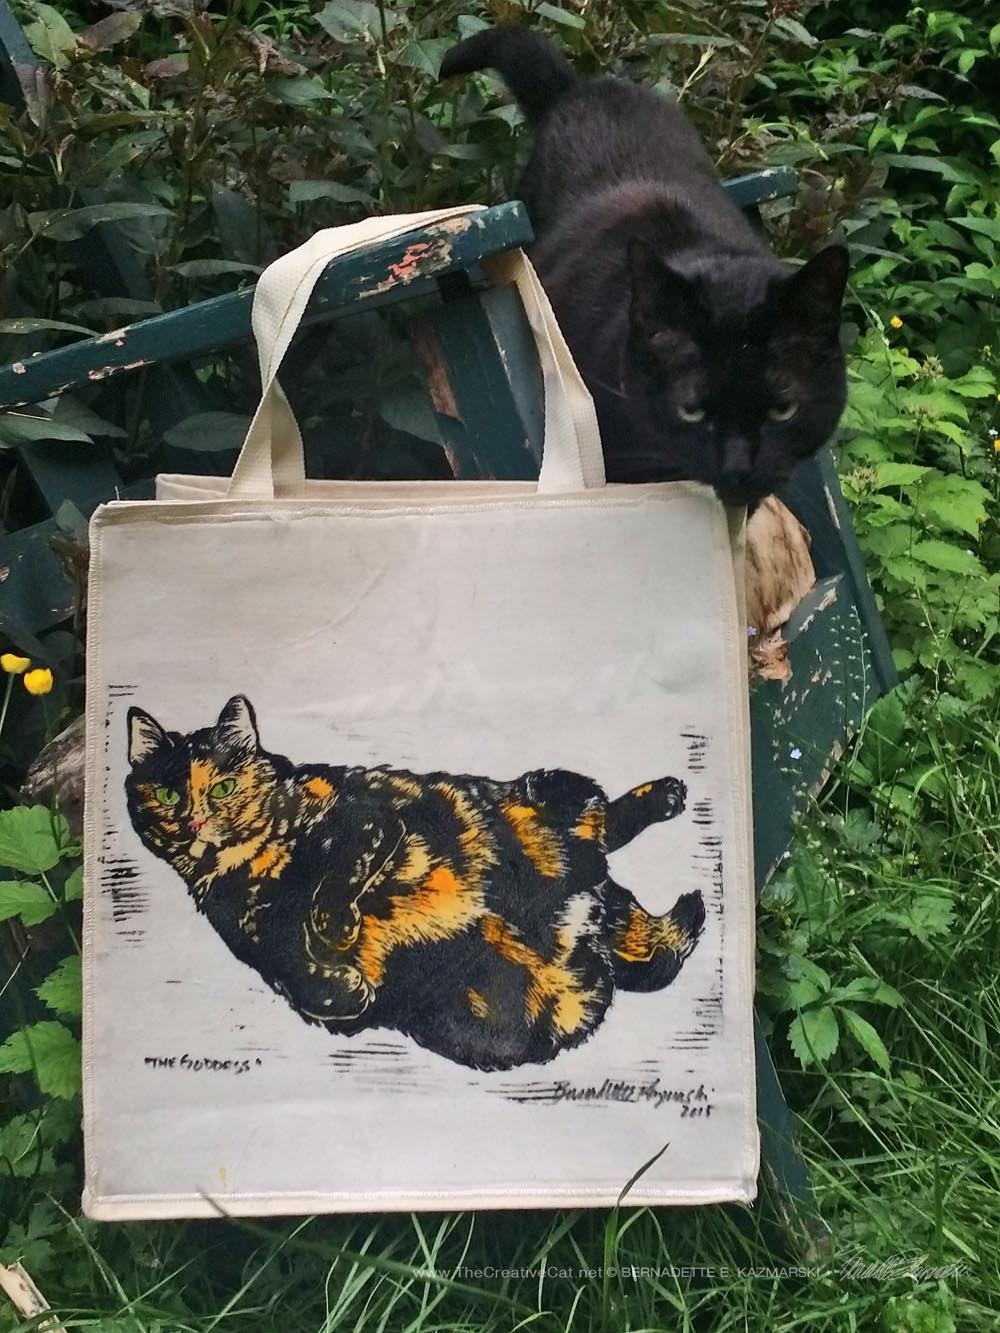 The Goddess tote bag--and you know how Mimi loves to photobomb my product photography.